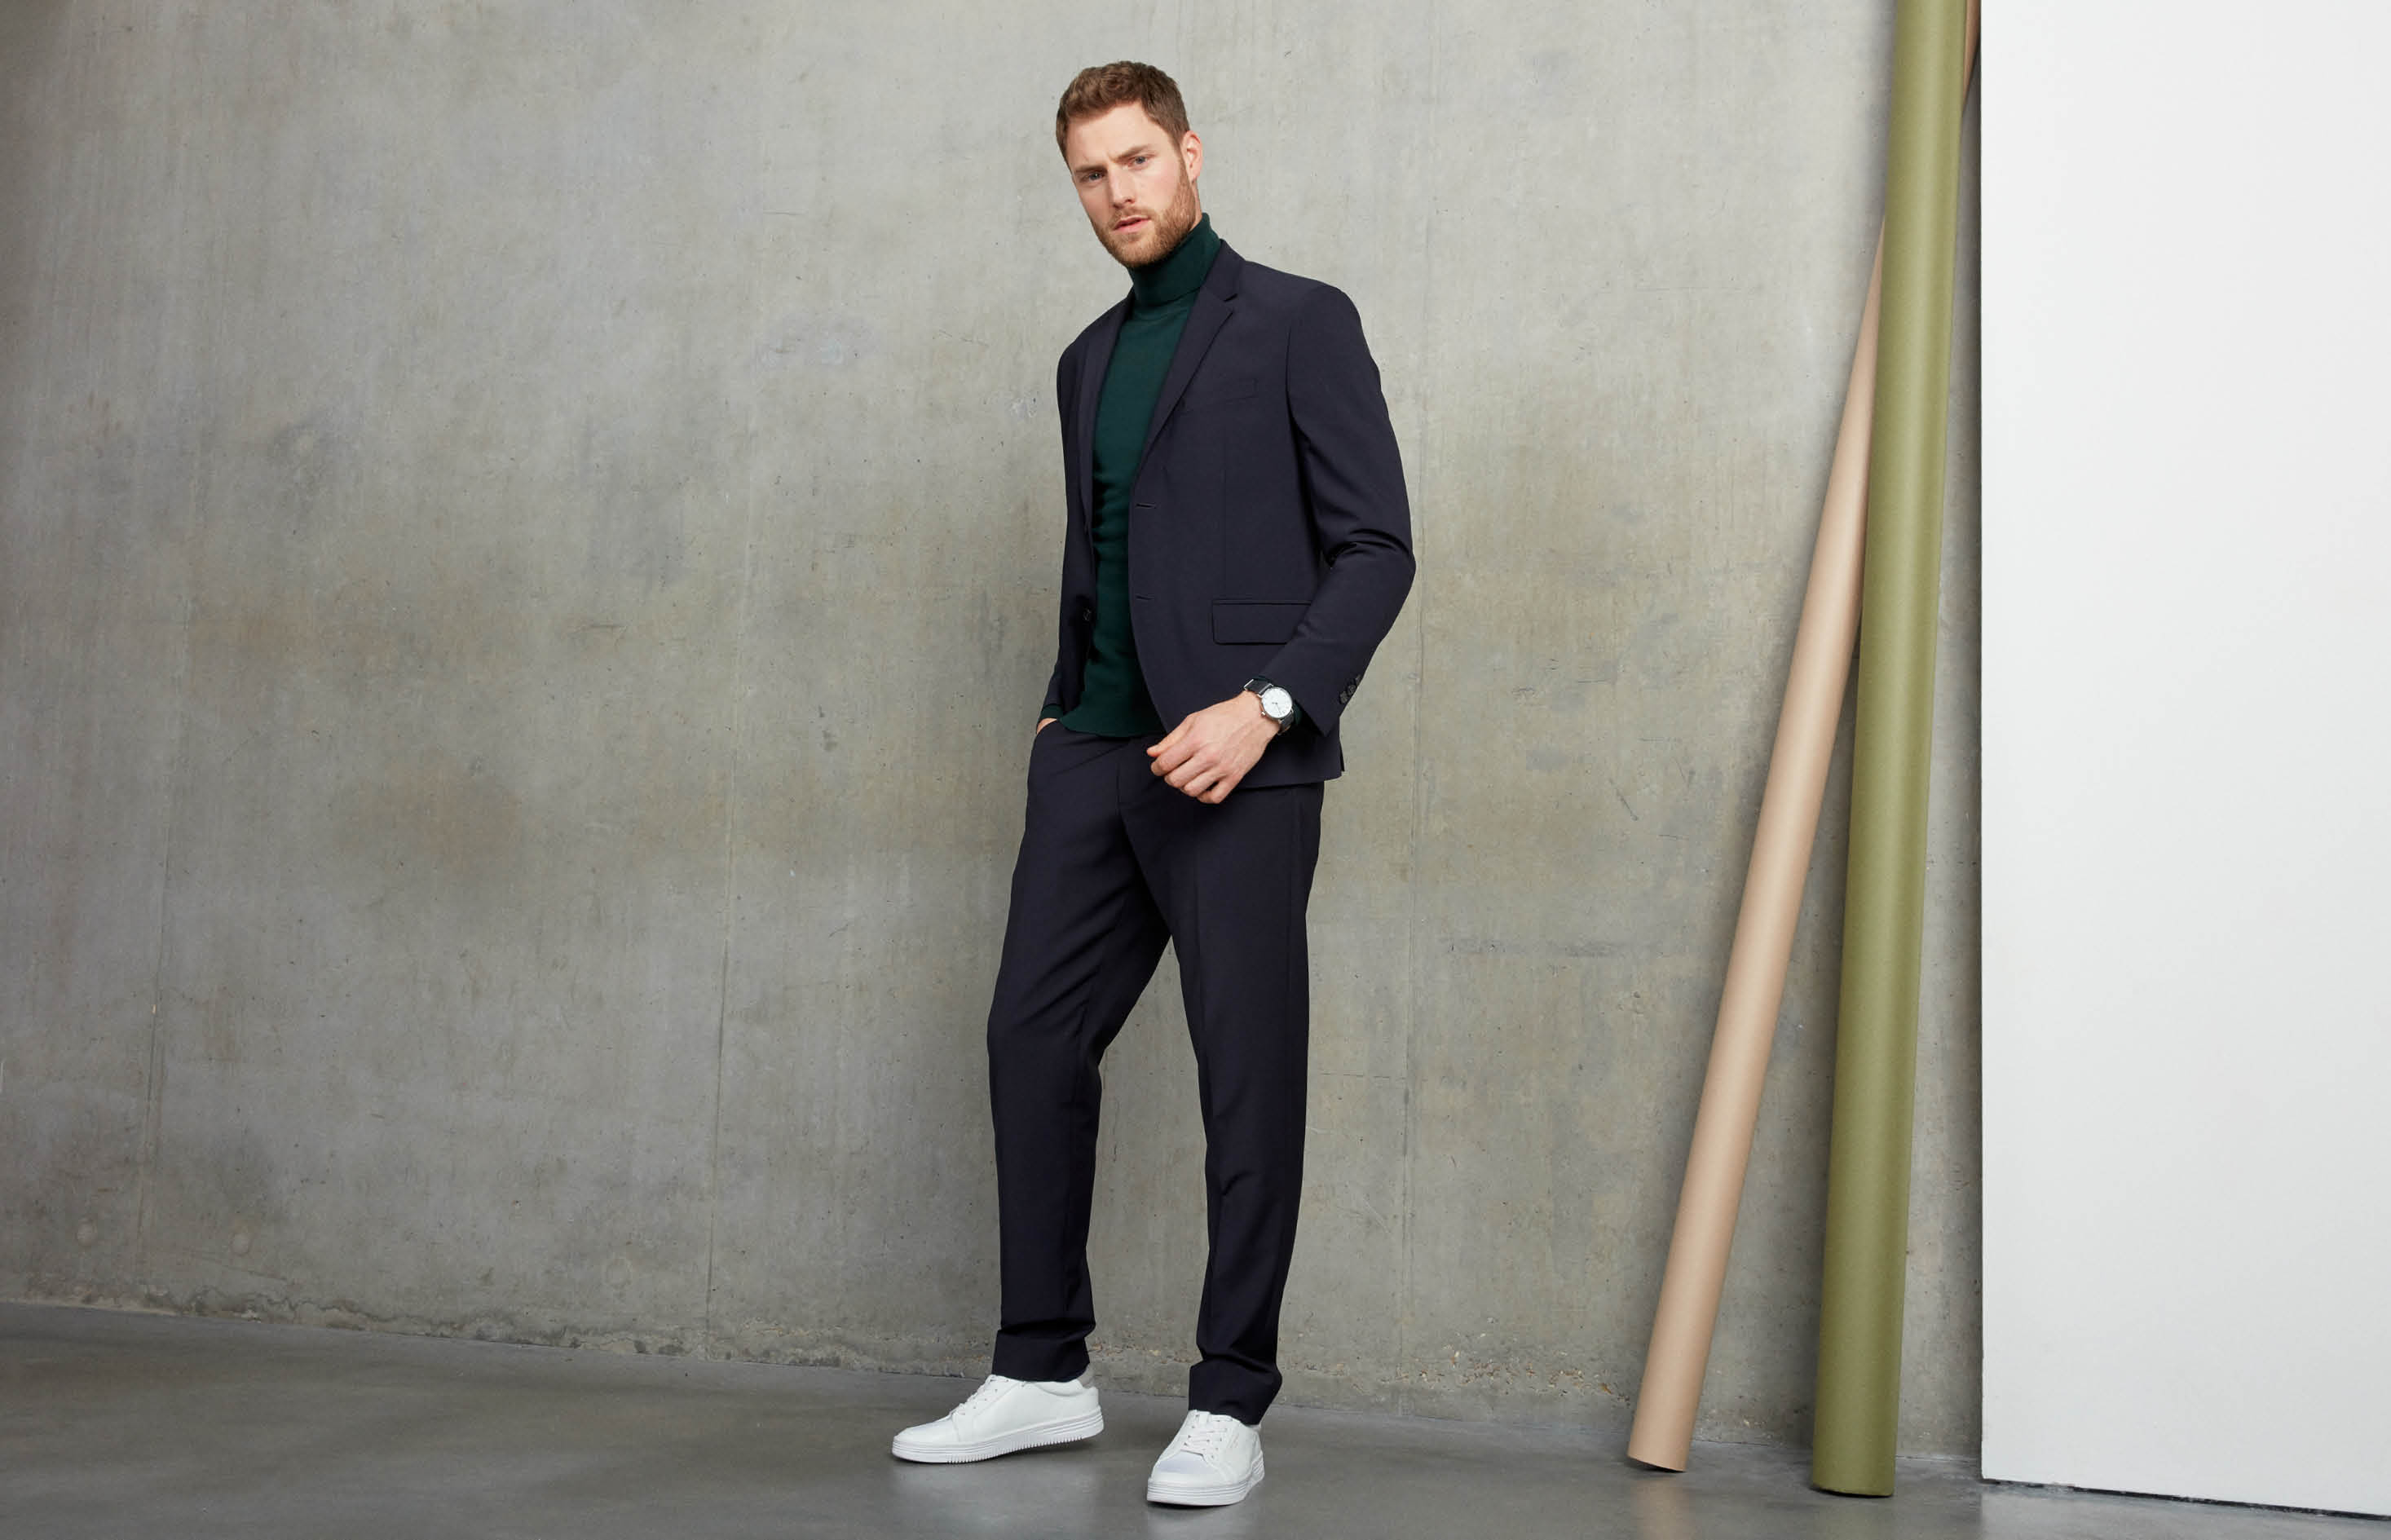 New ways to wear your old suits